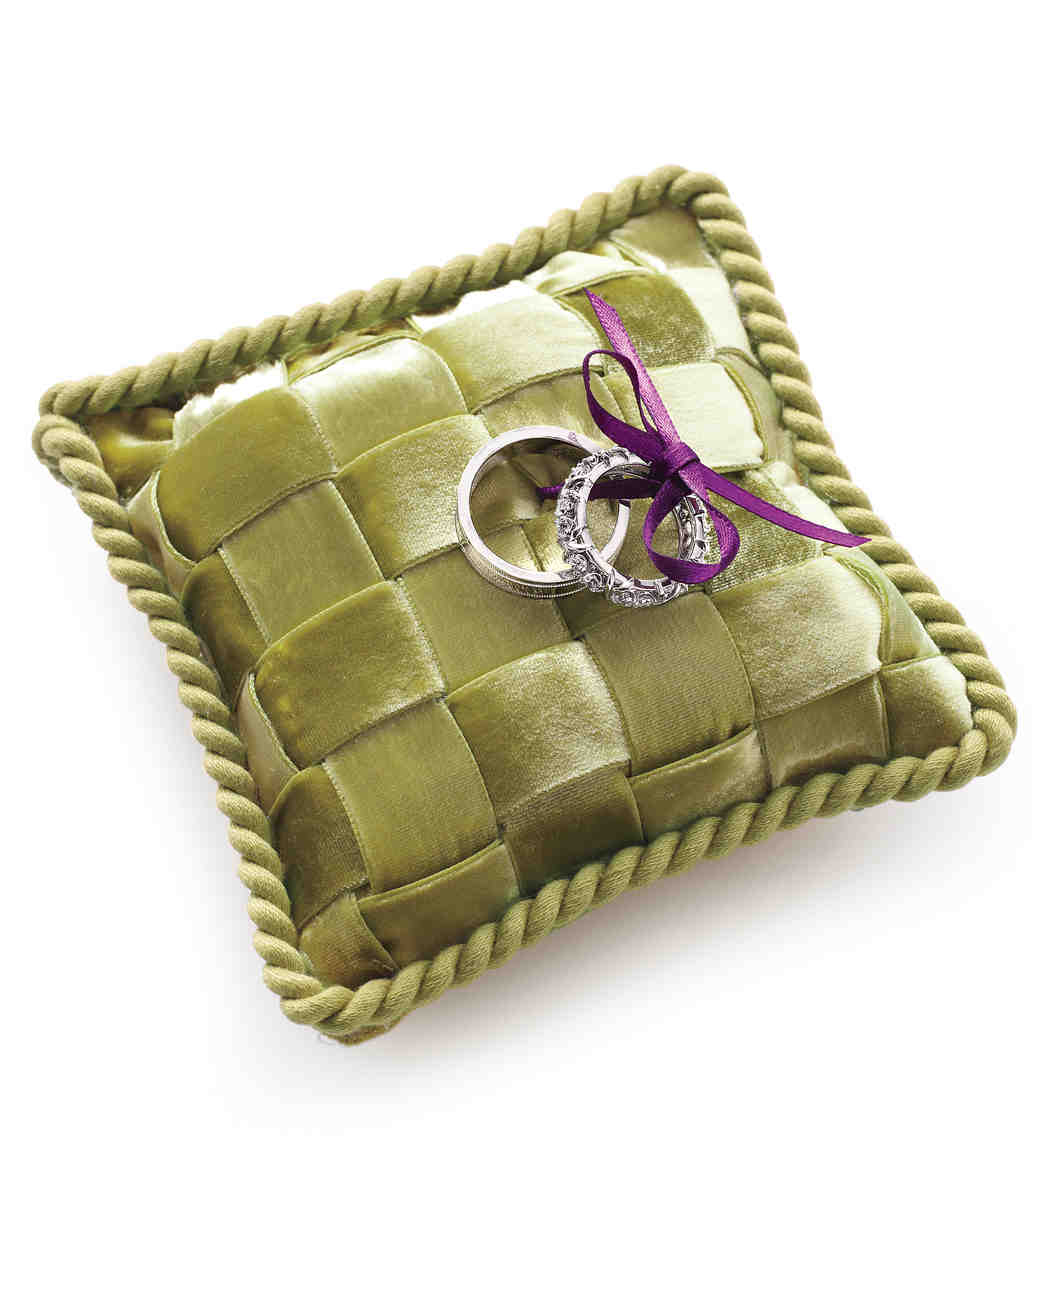 Ring Bearer Pillow Ideas You Can Make on Your Own Martha